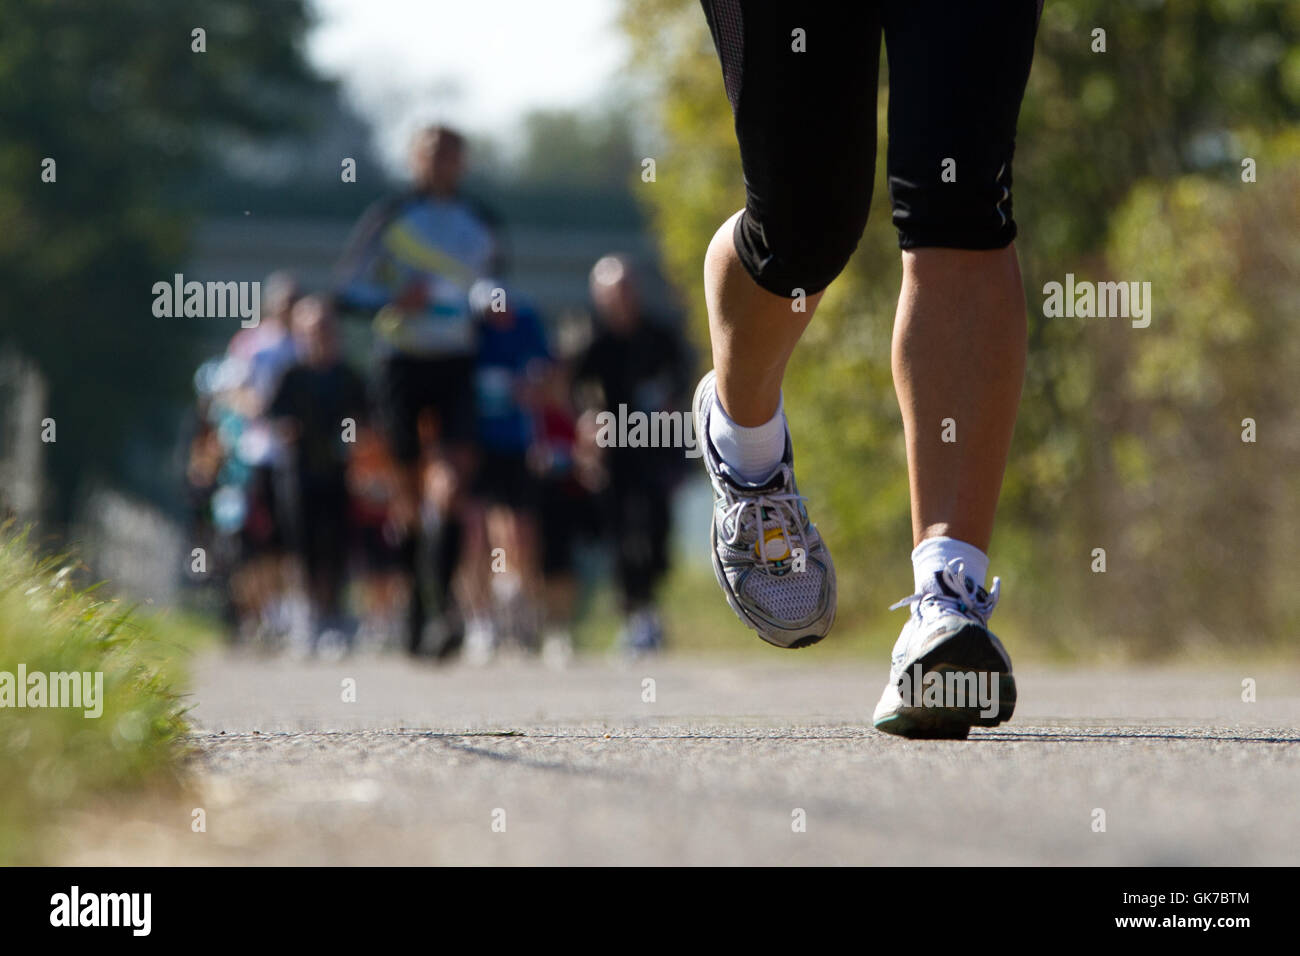 marathon runner in competition - Stock Image